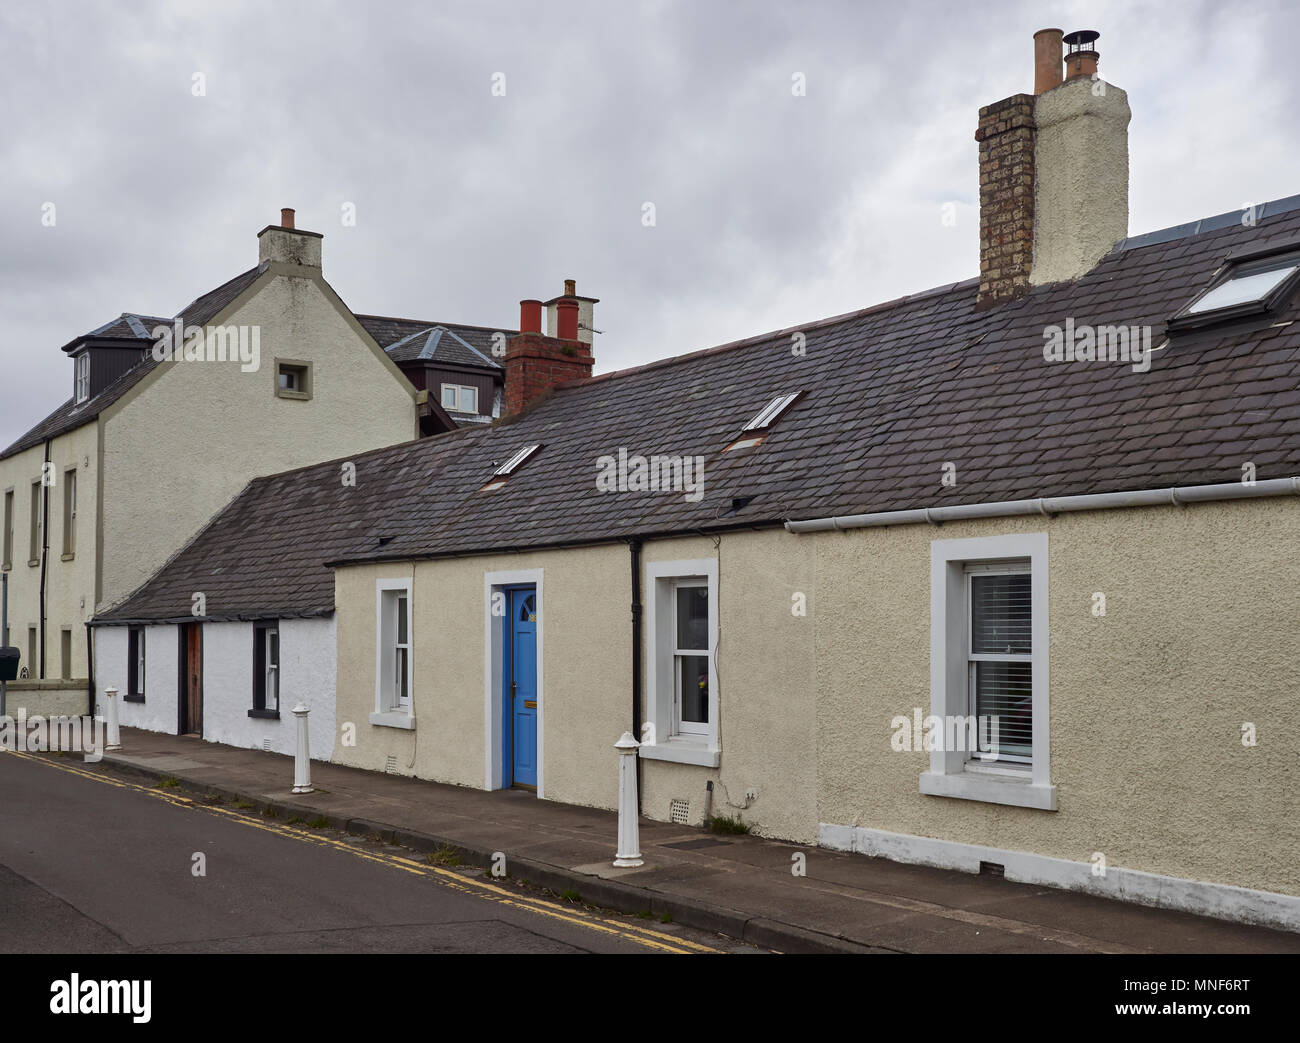 A row of single storey old Fishermens Cottages at Long Lane in Broughty Ferry, near Dundee, Angus, Scotland. Stock Photo